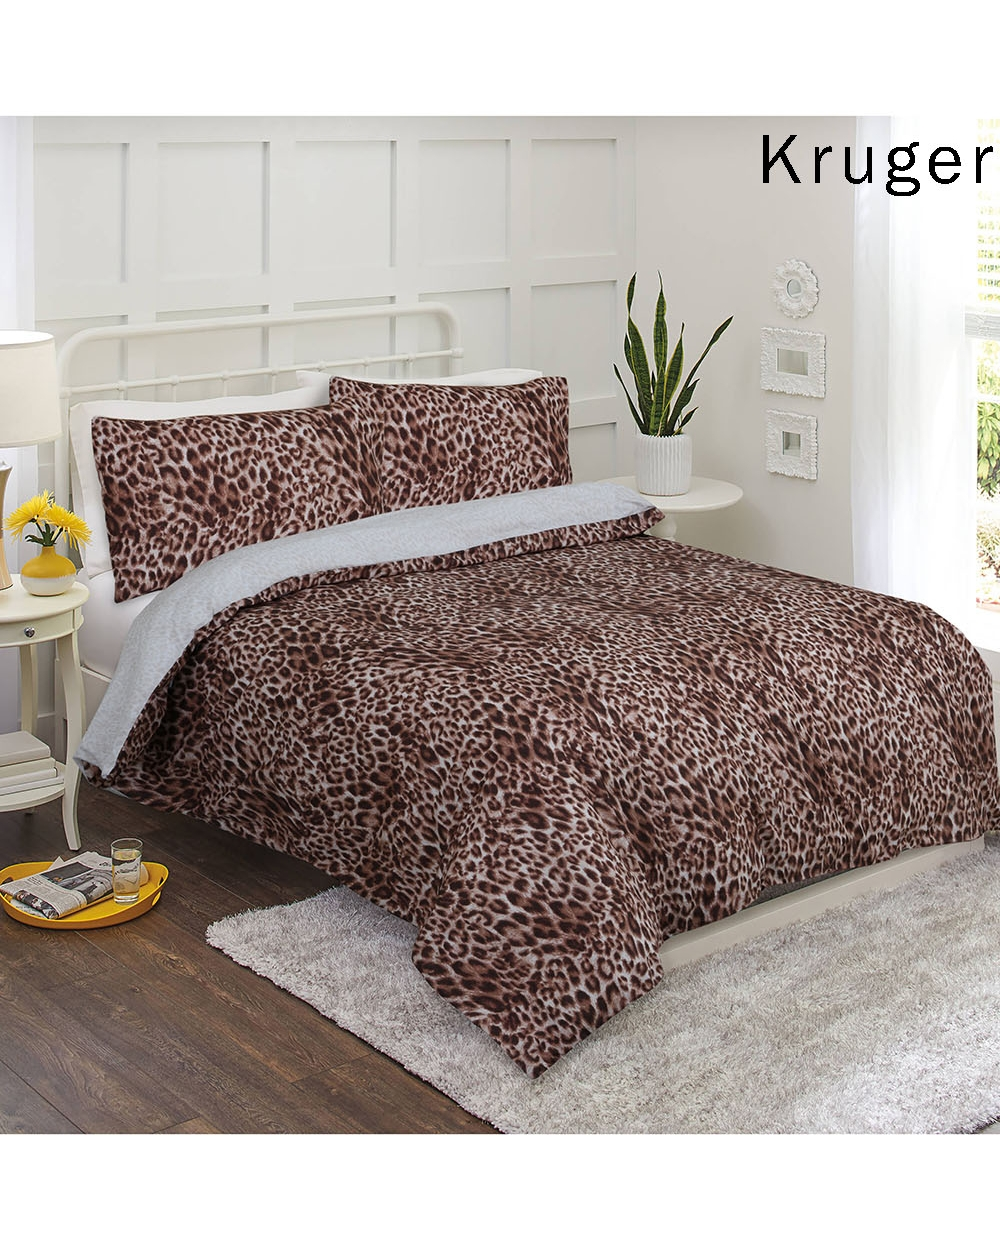 Kruger-Reversible Printed Quilt Cover